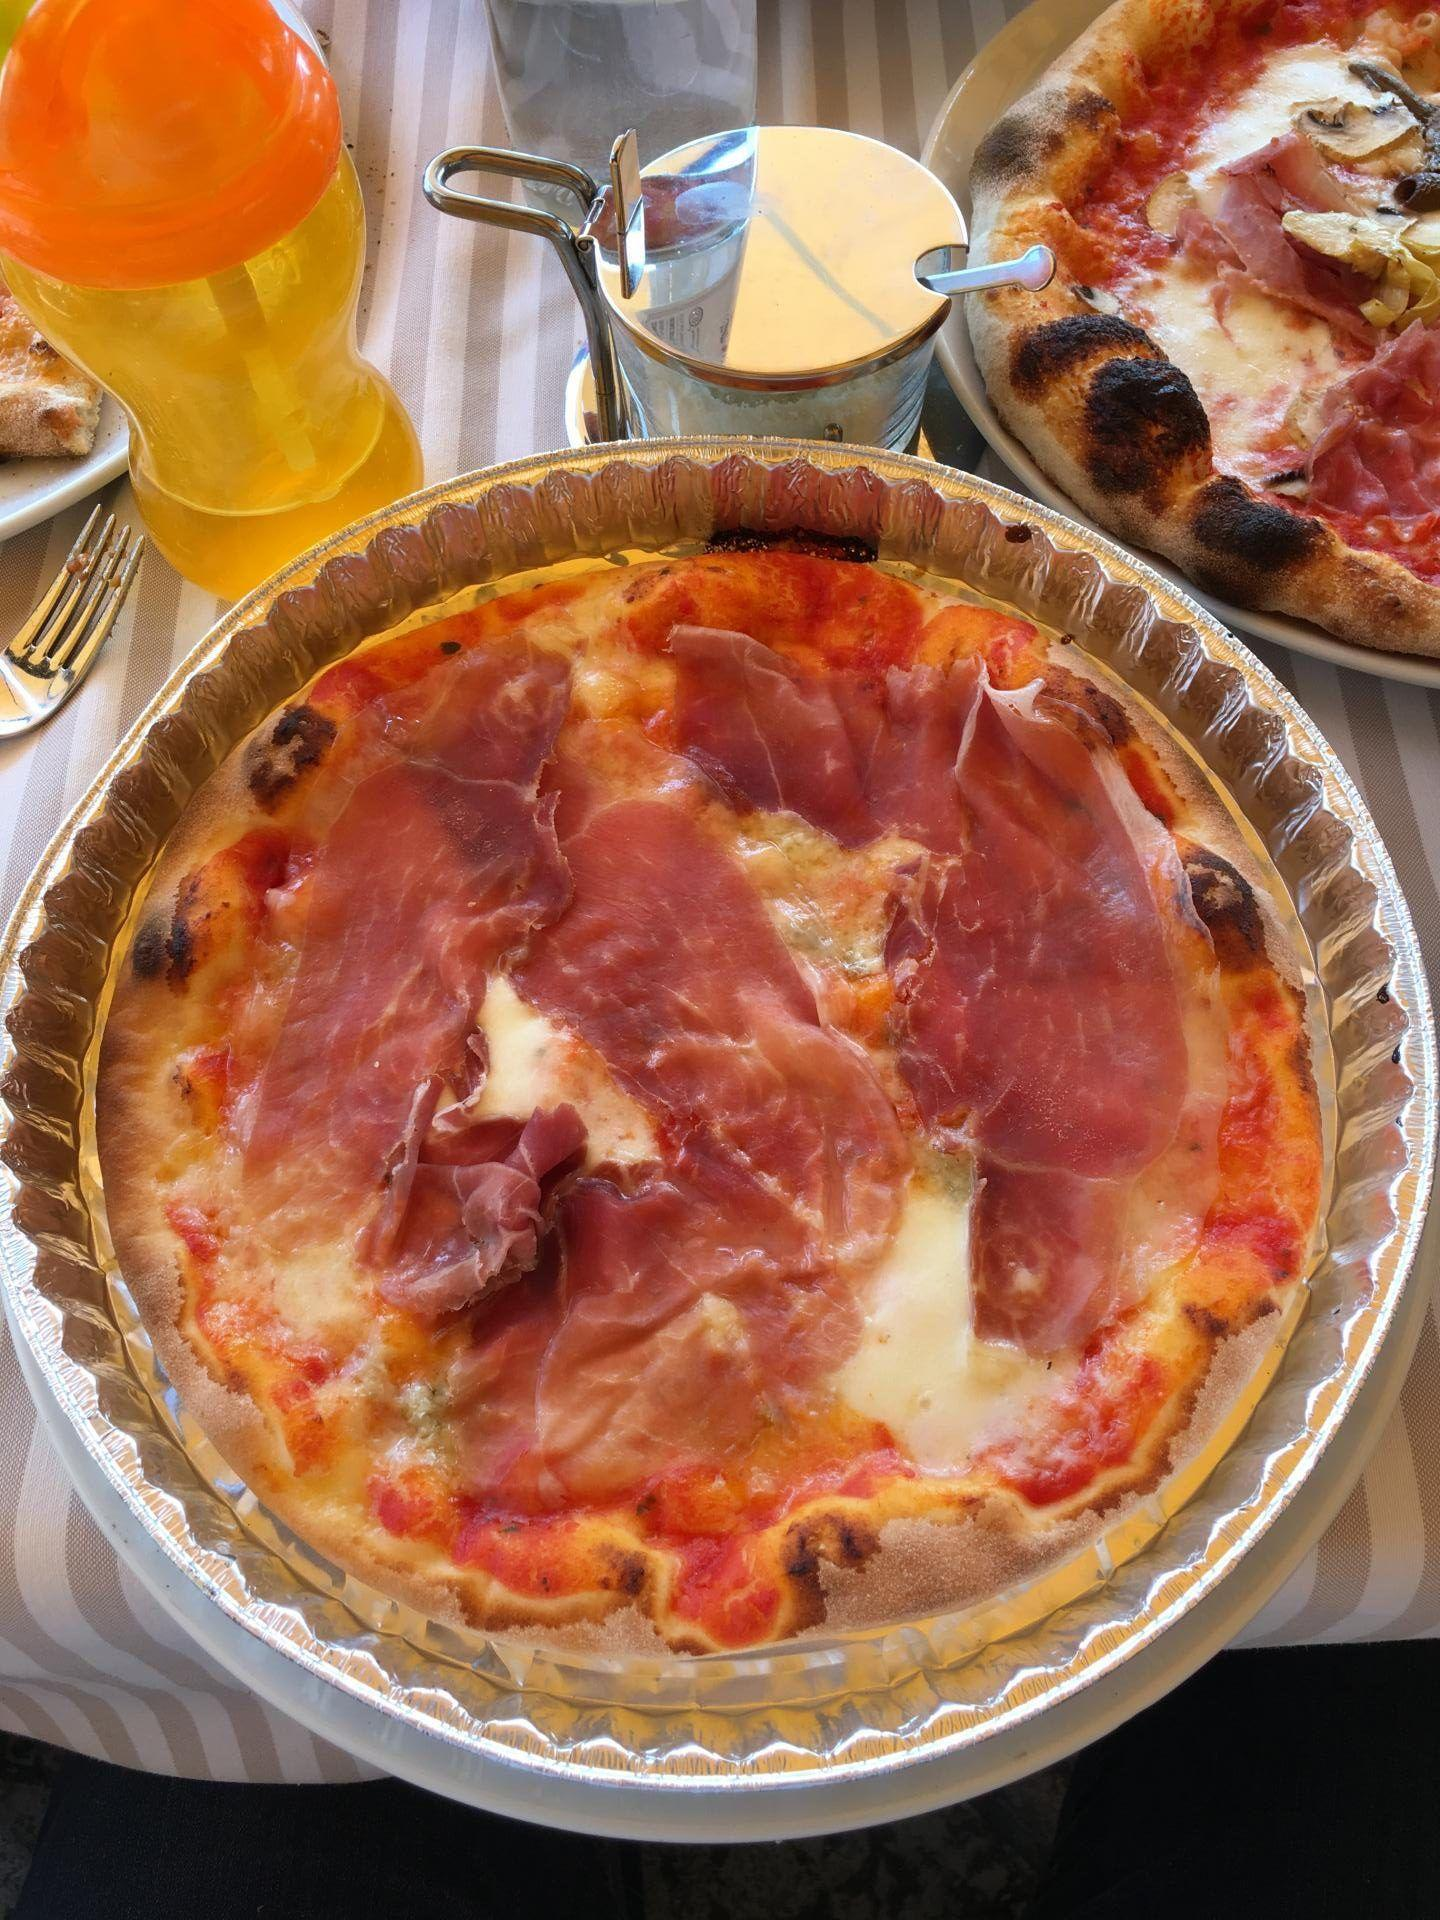 gluten free pizza italy http://www.glutenfreemrsd.com/2016/08/gluten-free-guide-to-italy-tips-and-resources/